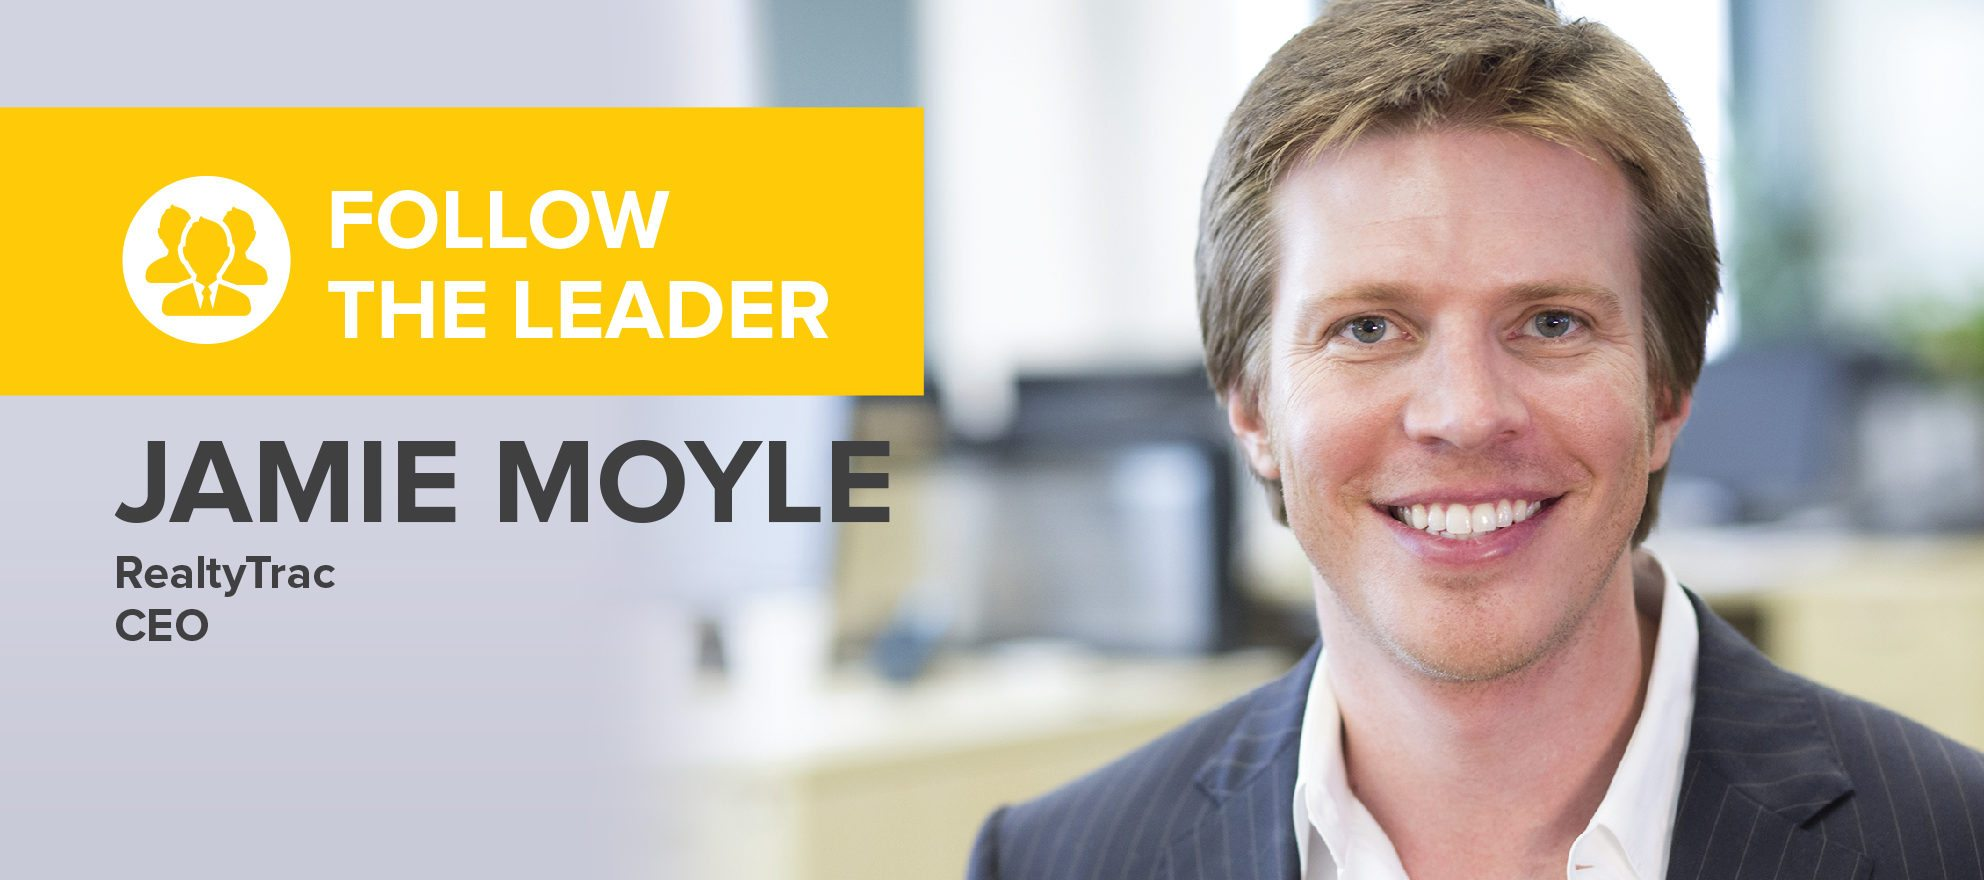 Follow the Leaders: Jamie Moyle, CEO of RealtyTrac and founder of Homefacts.com